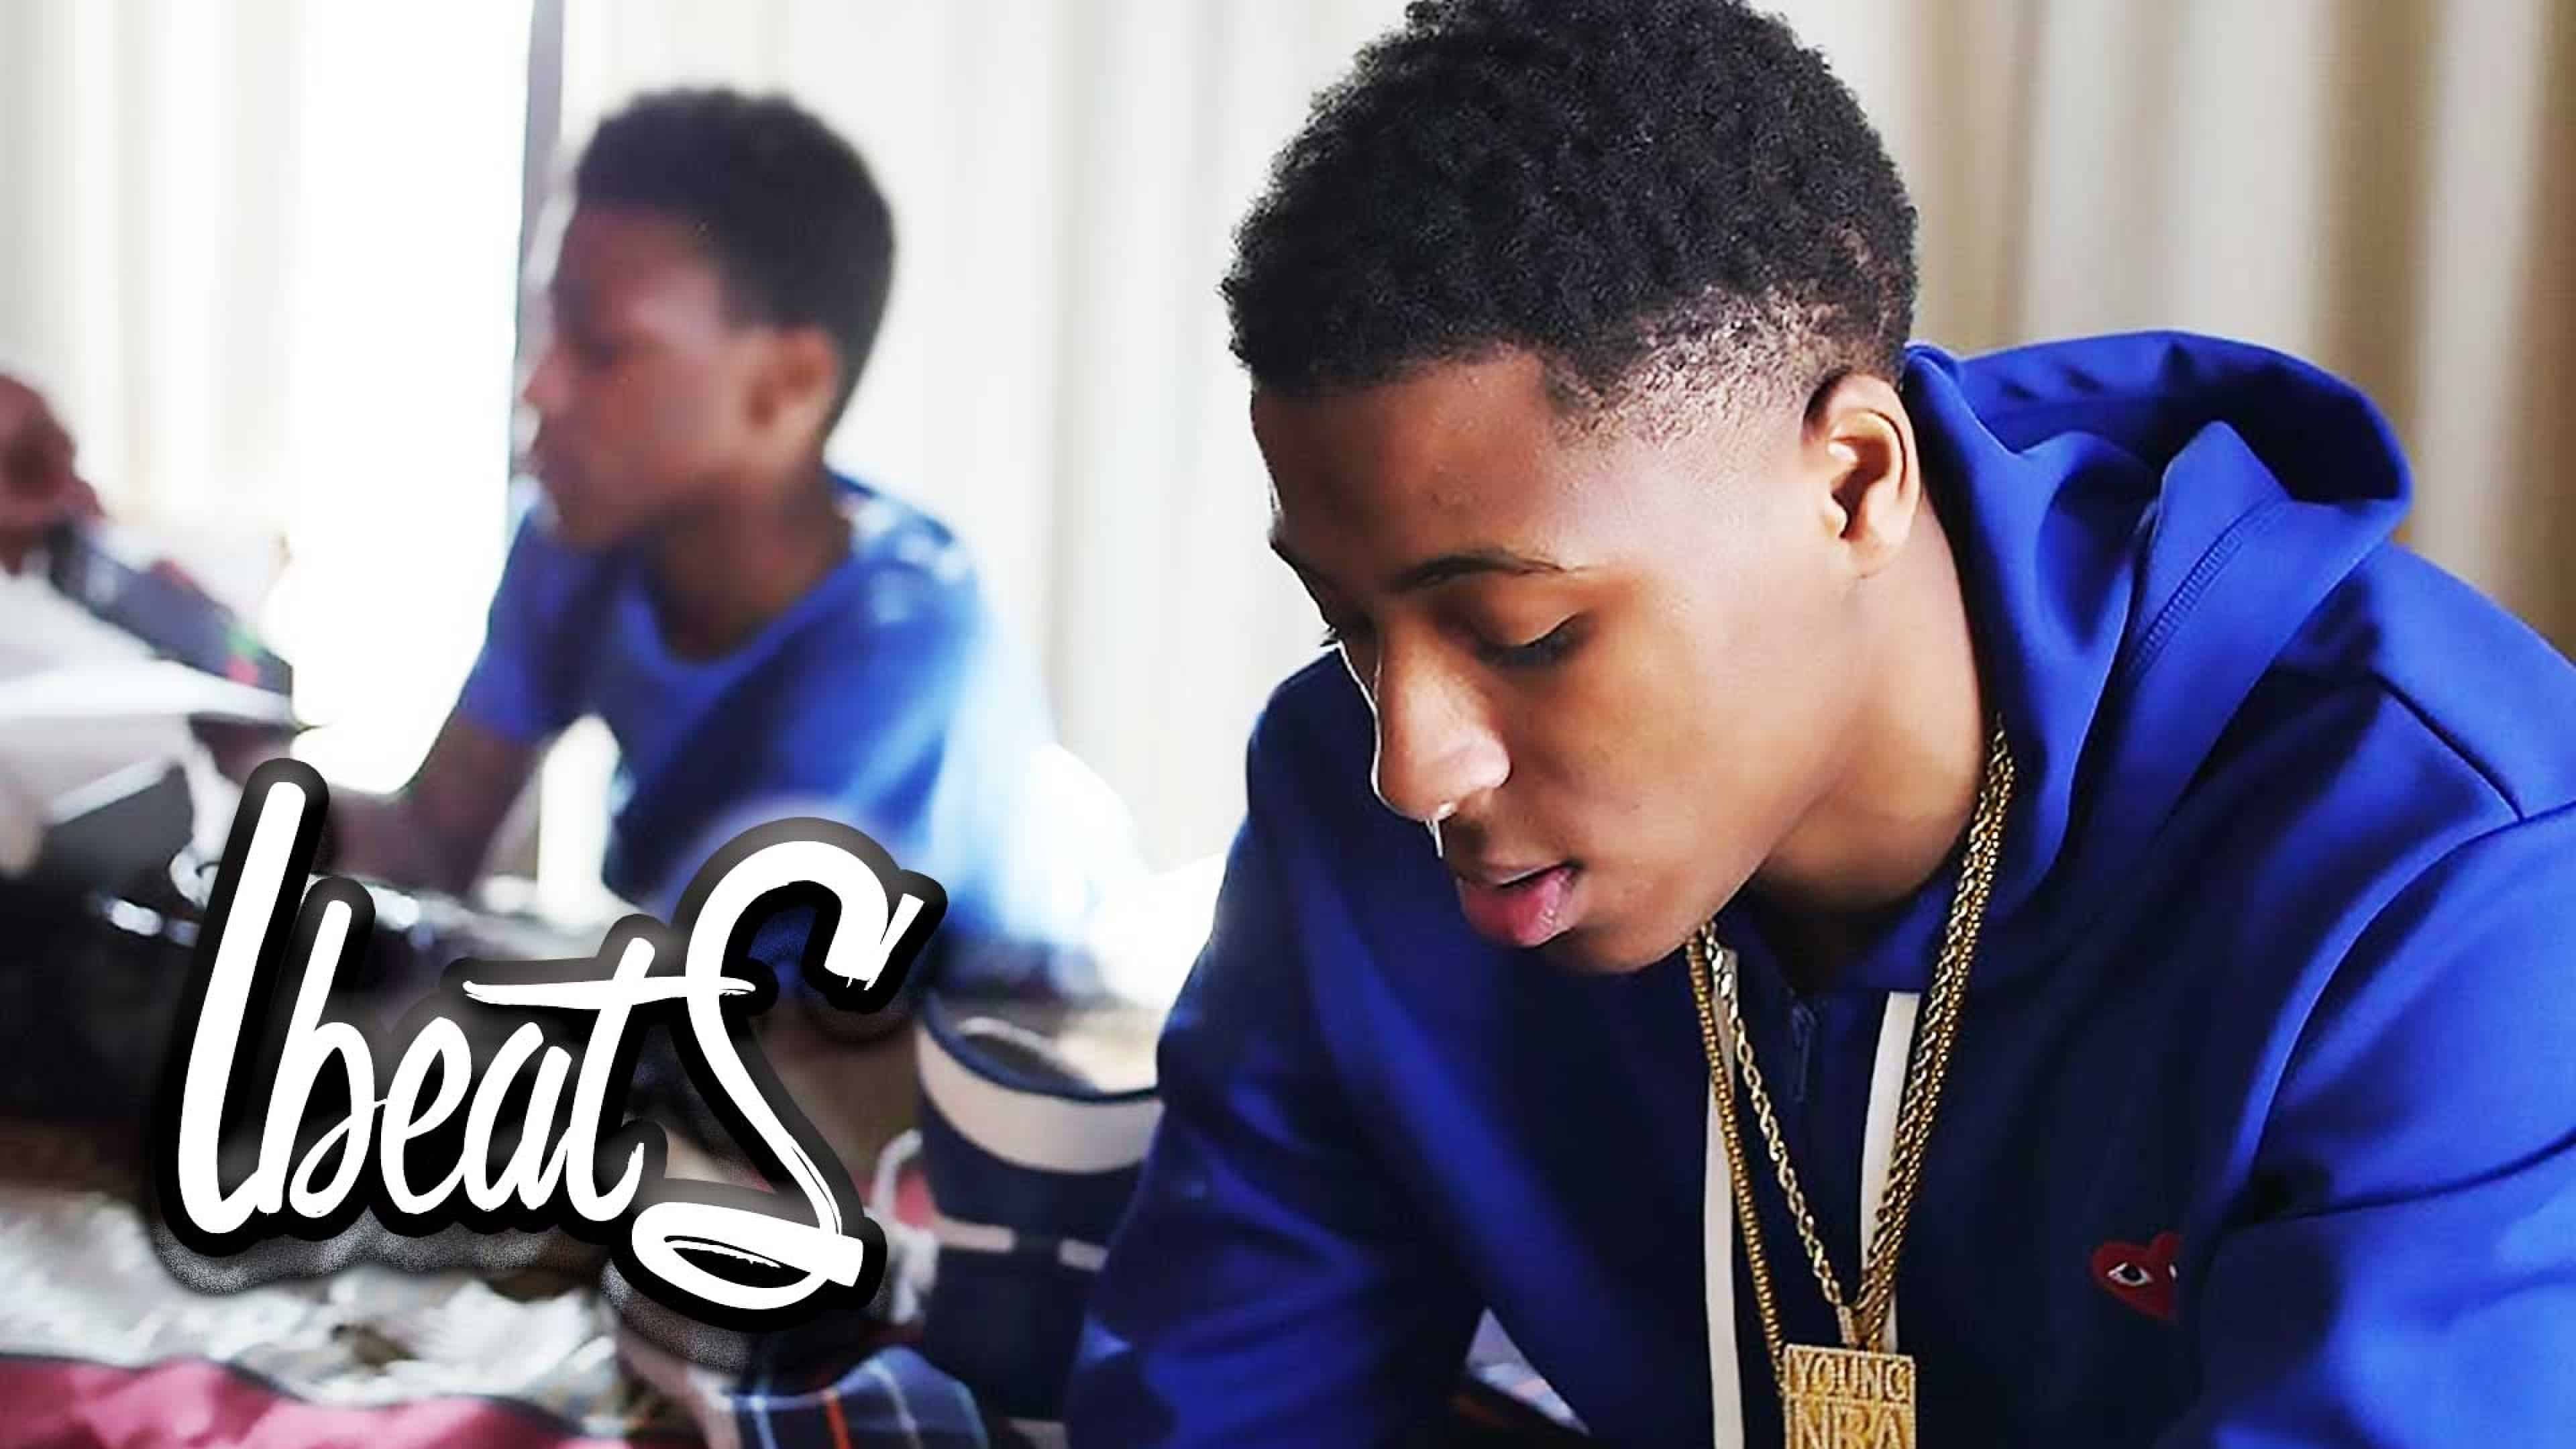 Nba Youngboy Wallpapers 4k Hd Background Nba Youngboy Quotes 462411 Hd Wallpaper Backgrounds Download